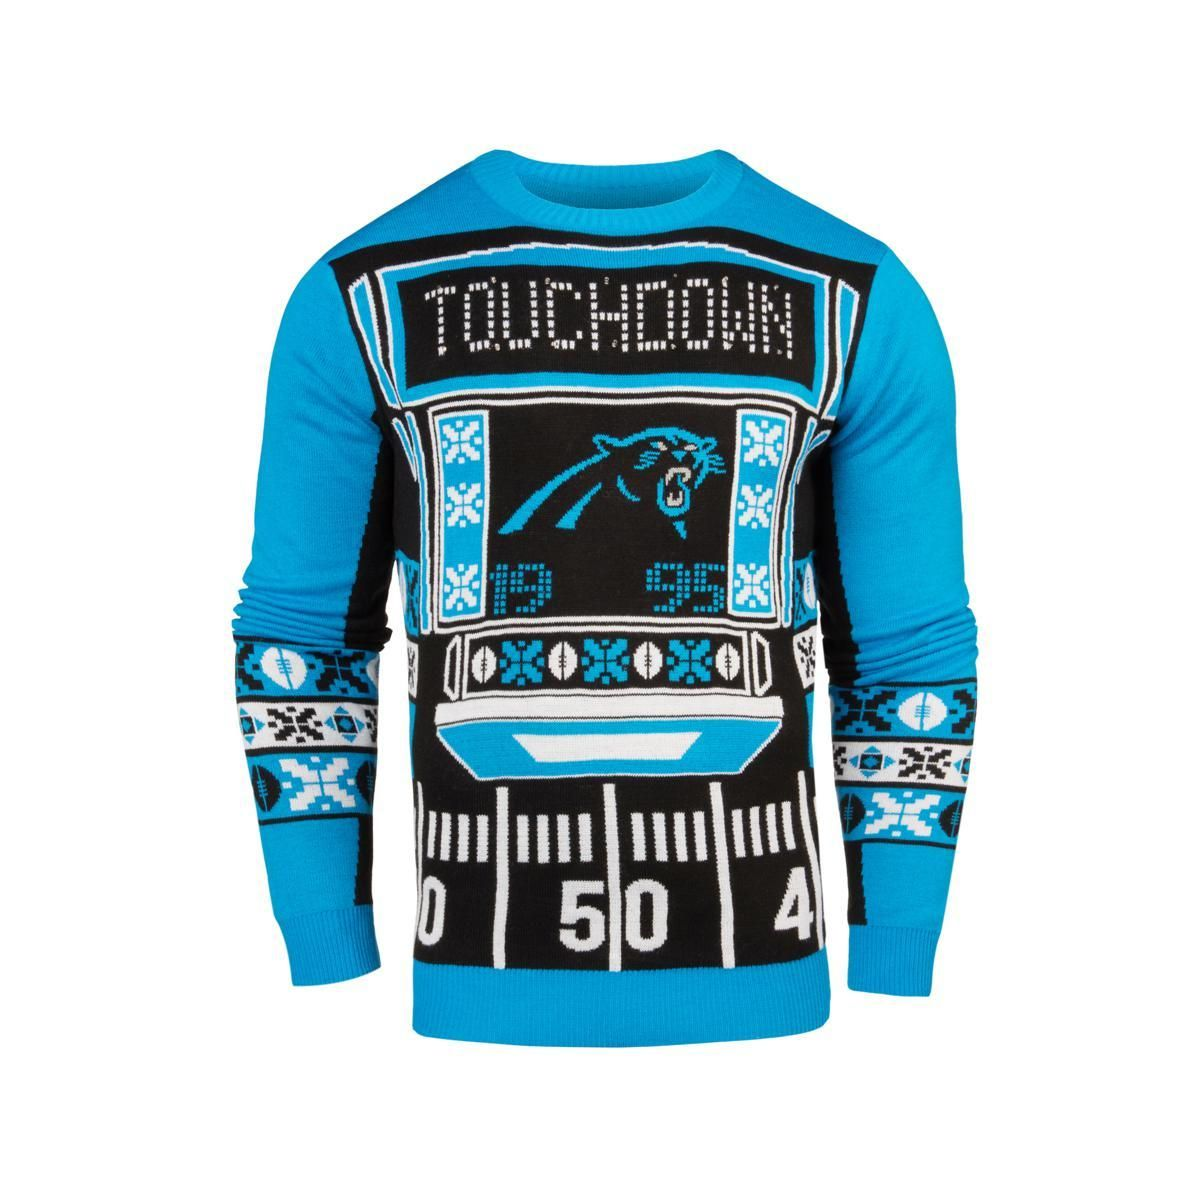 8bf226f84 Officially Licensed NFL Light-Up LED Ugly Sweater by Forever Collectibles  Jacksonville Jaguars